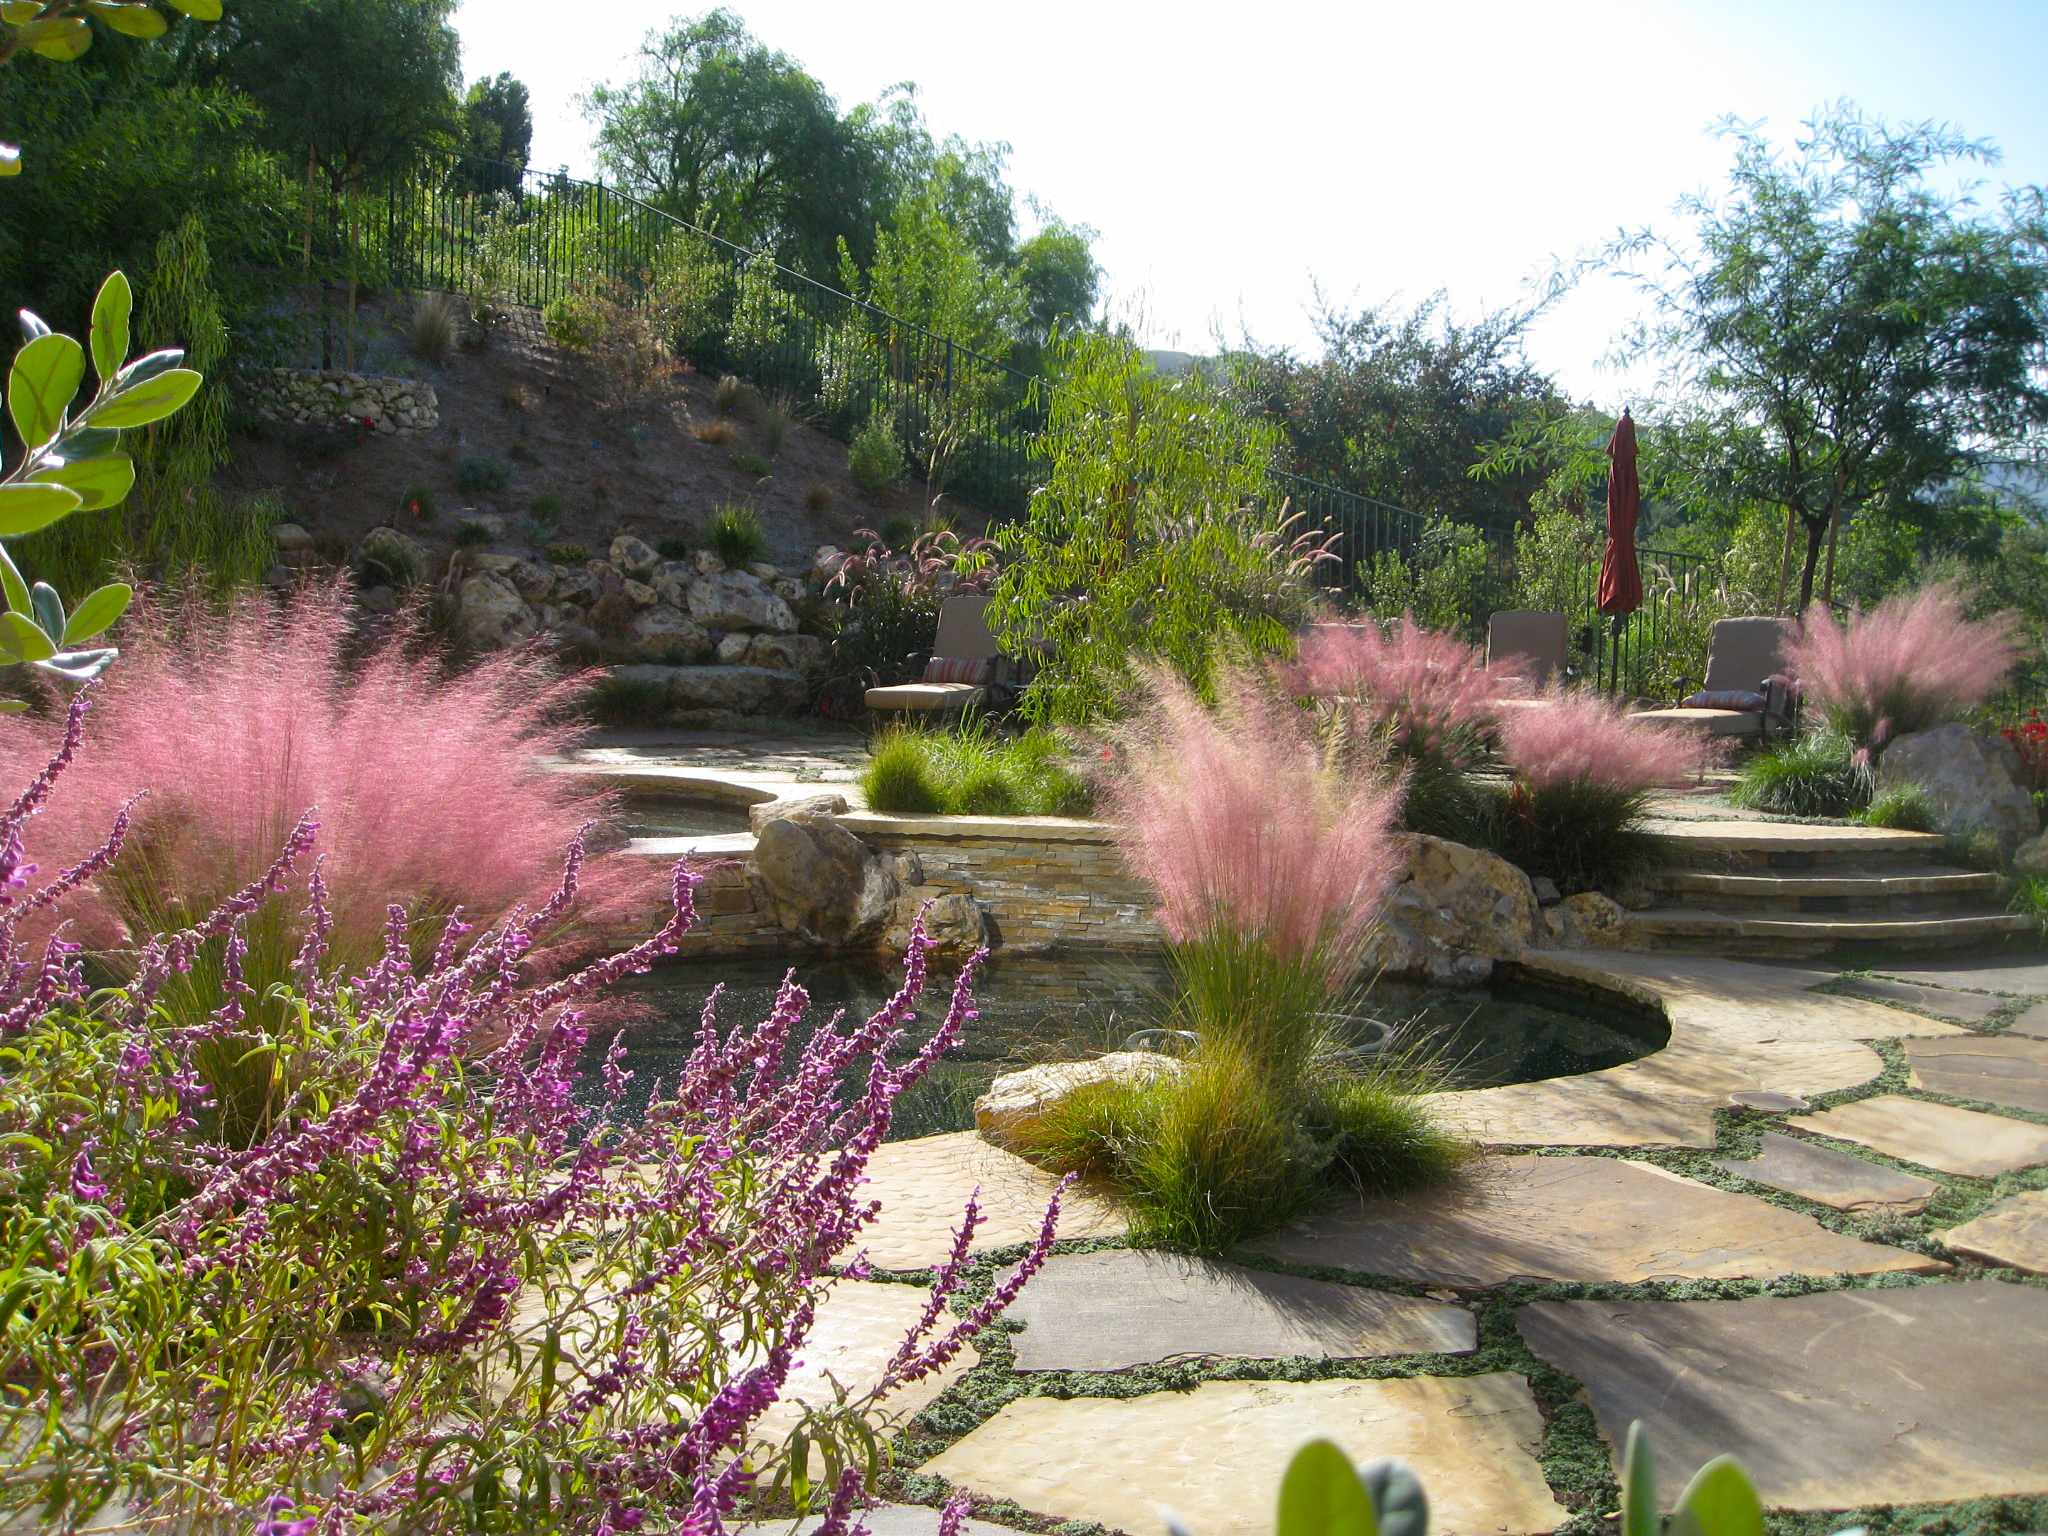 Landscape design los angeles Mediterranean Landscape hillside ornamental grasses Pool stone paving